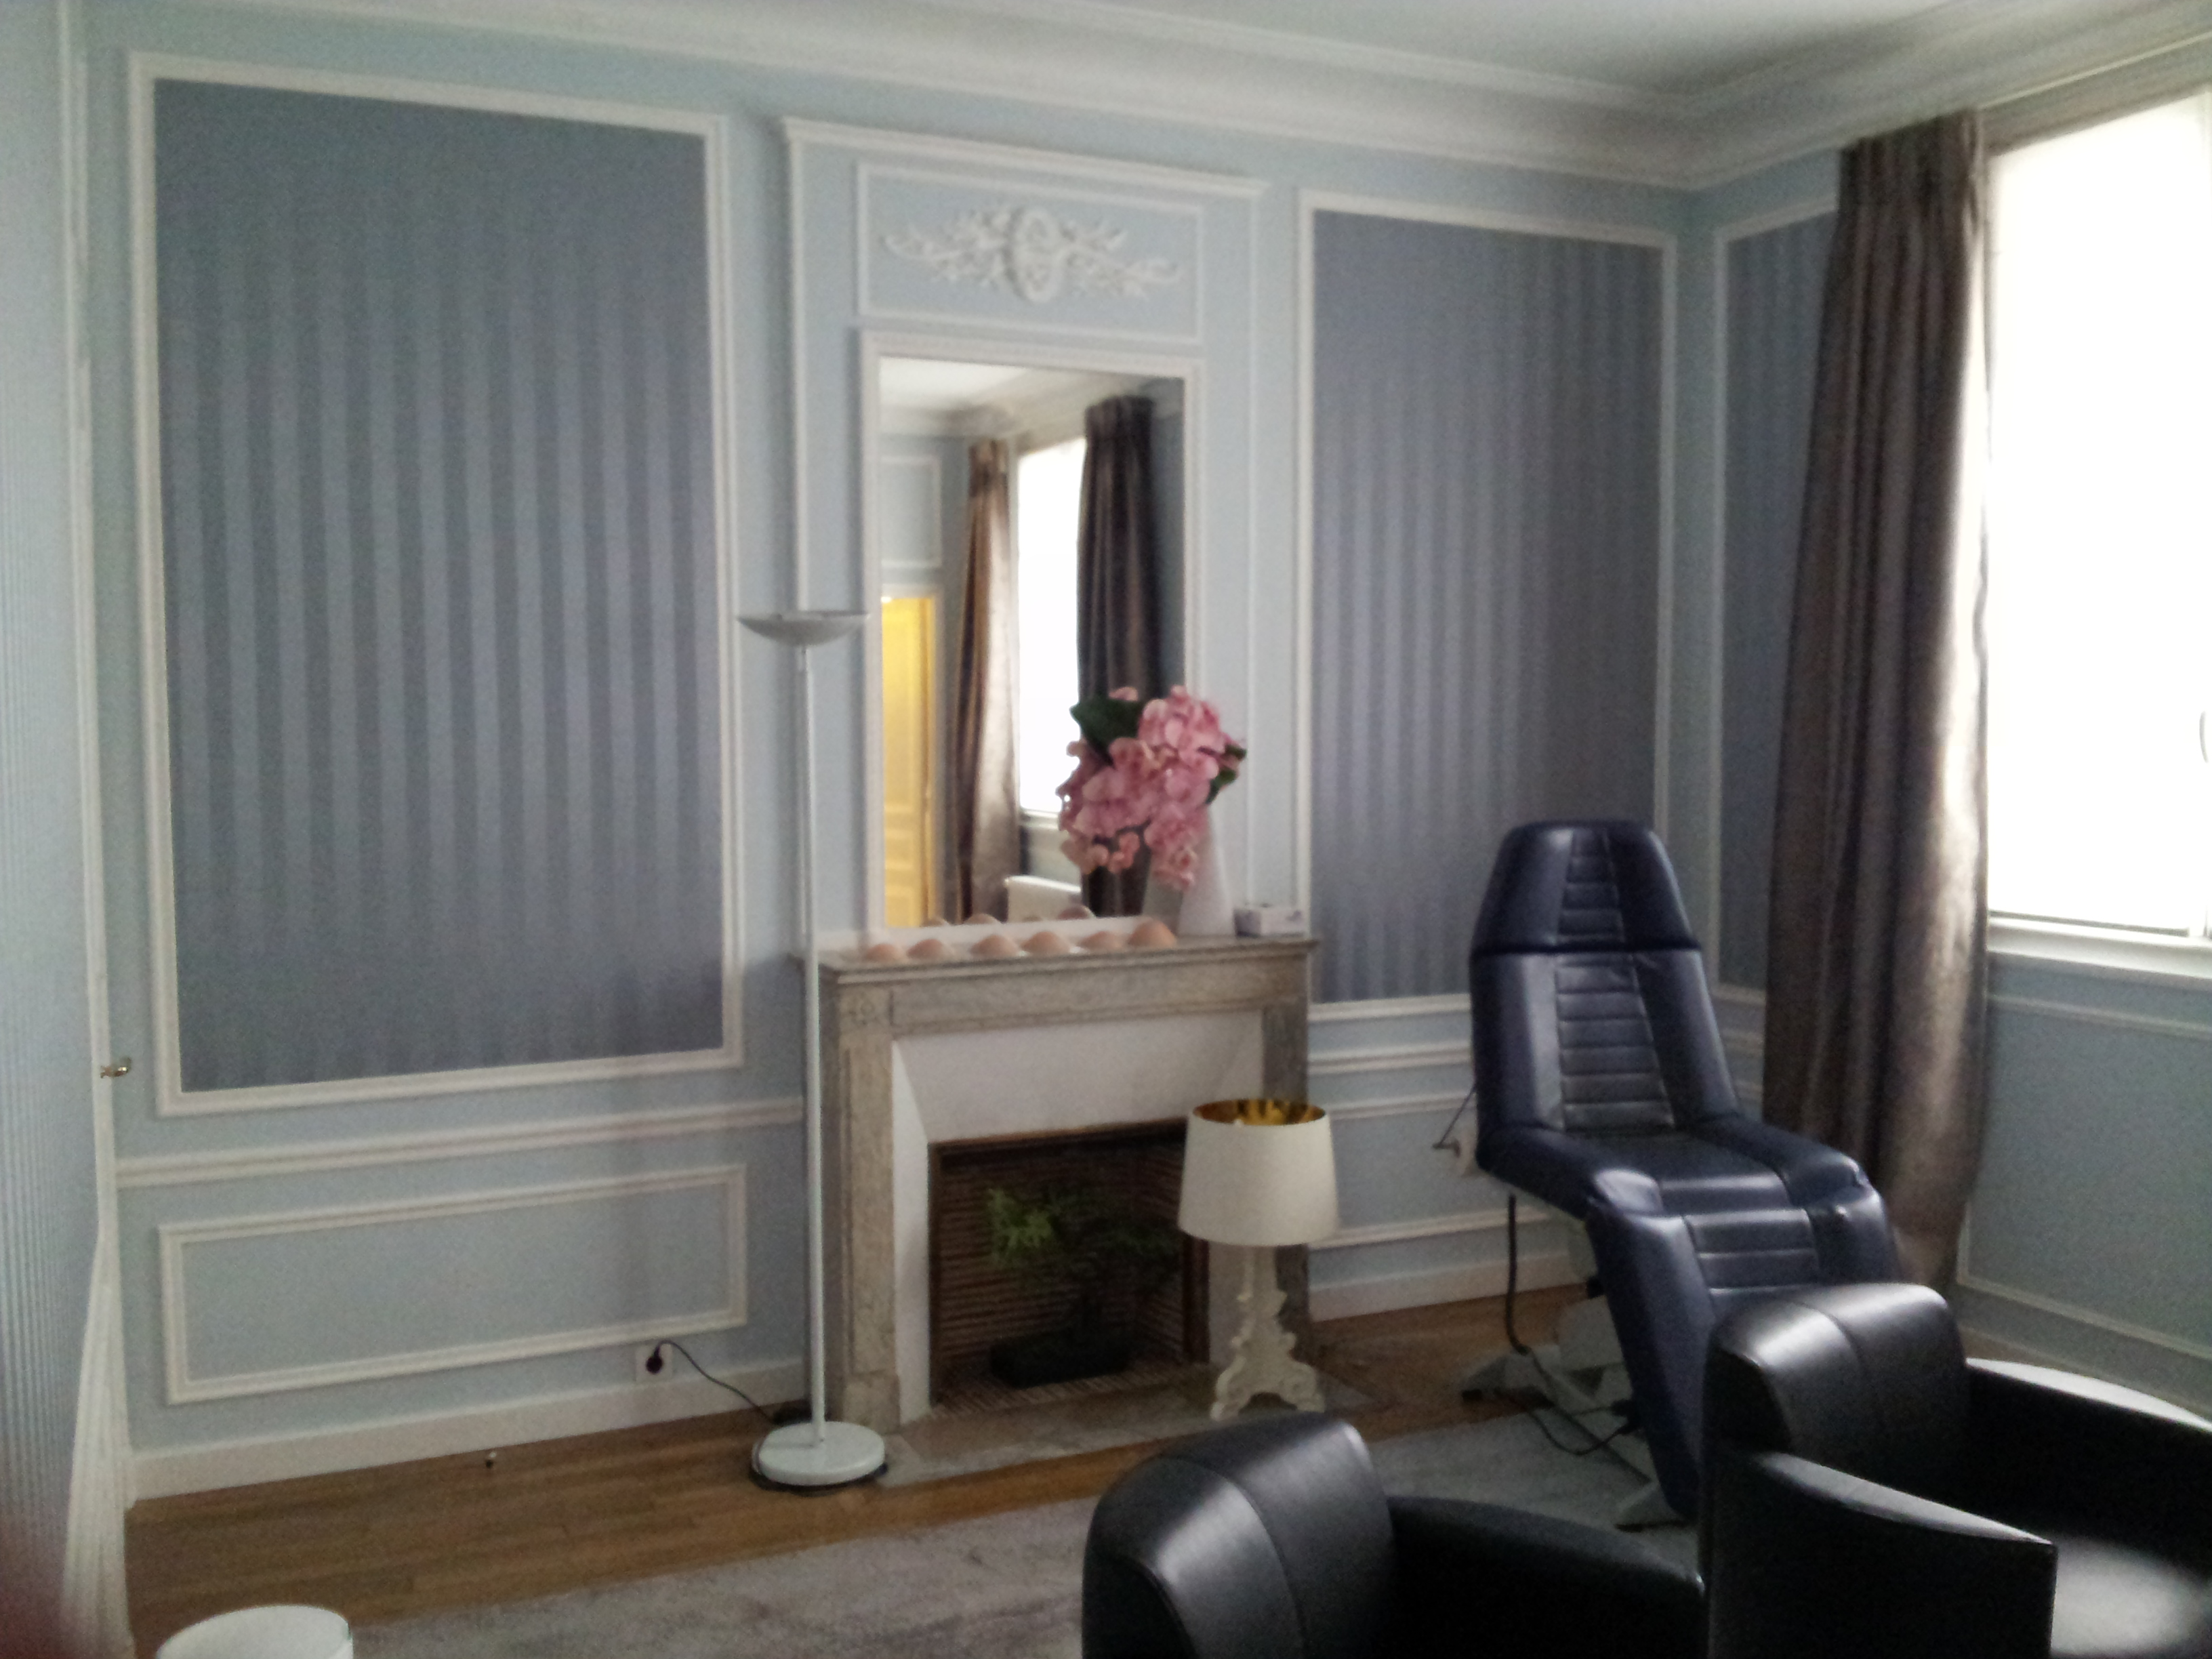 Dcoration dun bureau de standing dans un cabinet mdical  Paris  Intrieurs